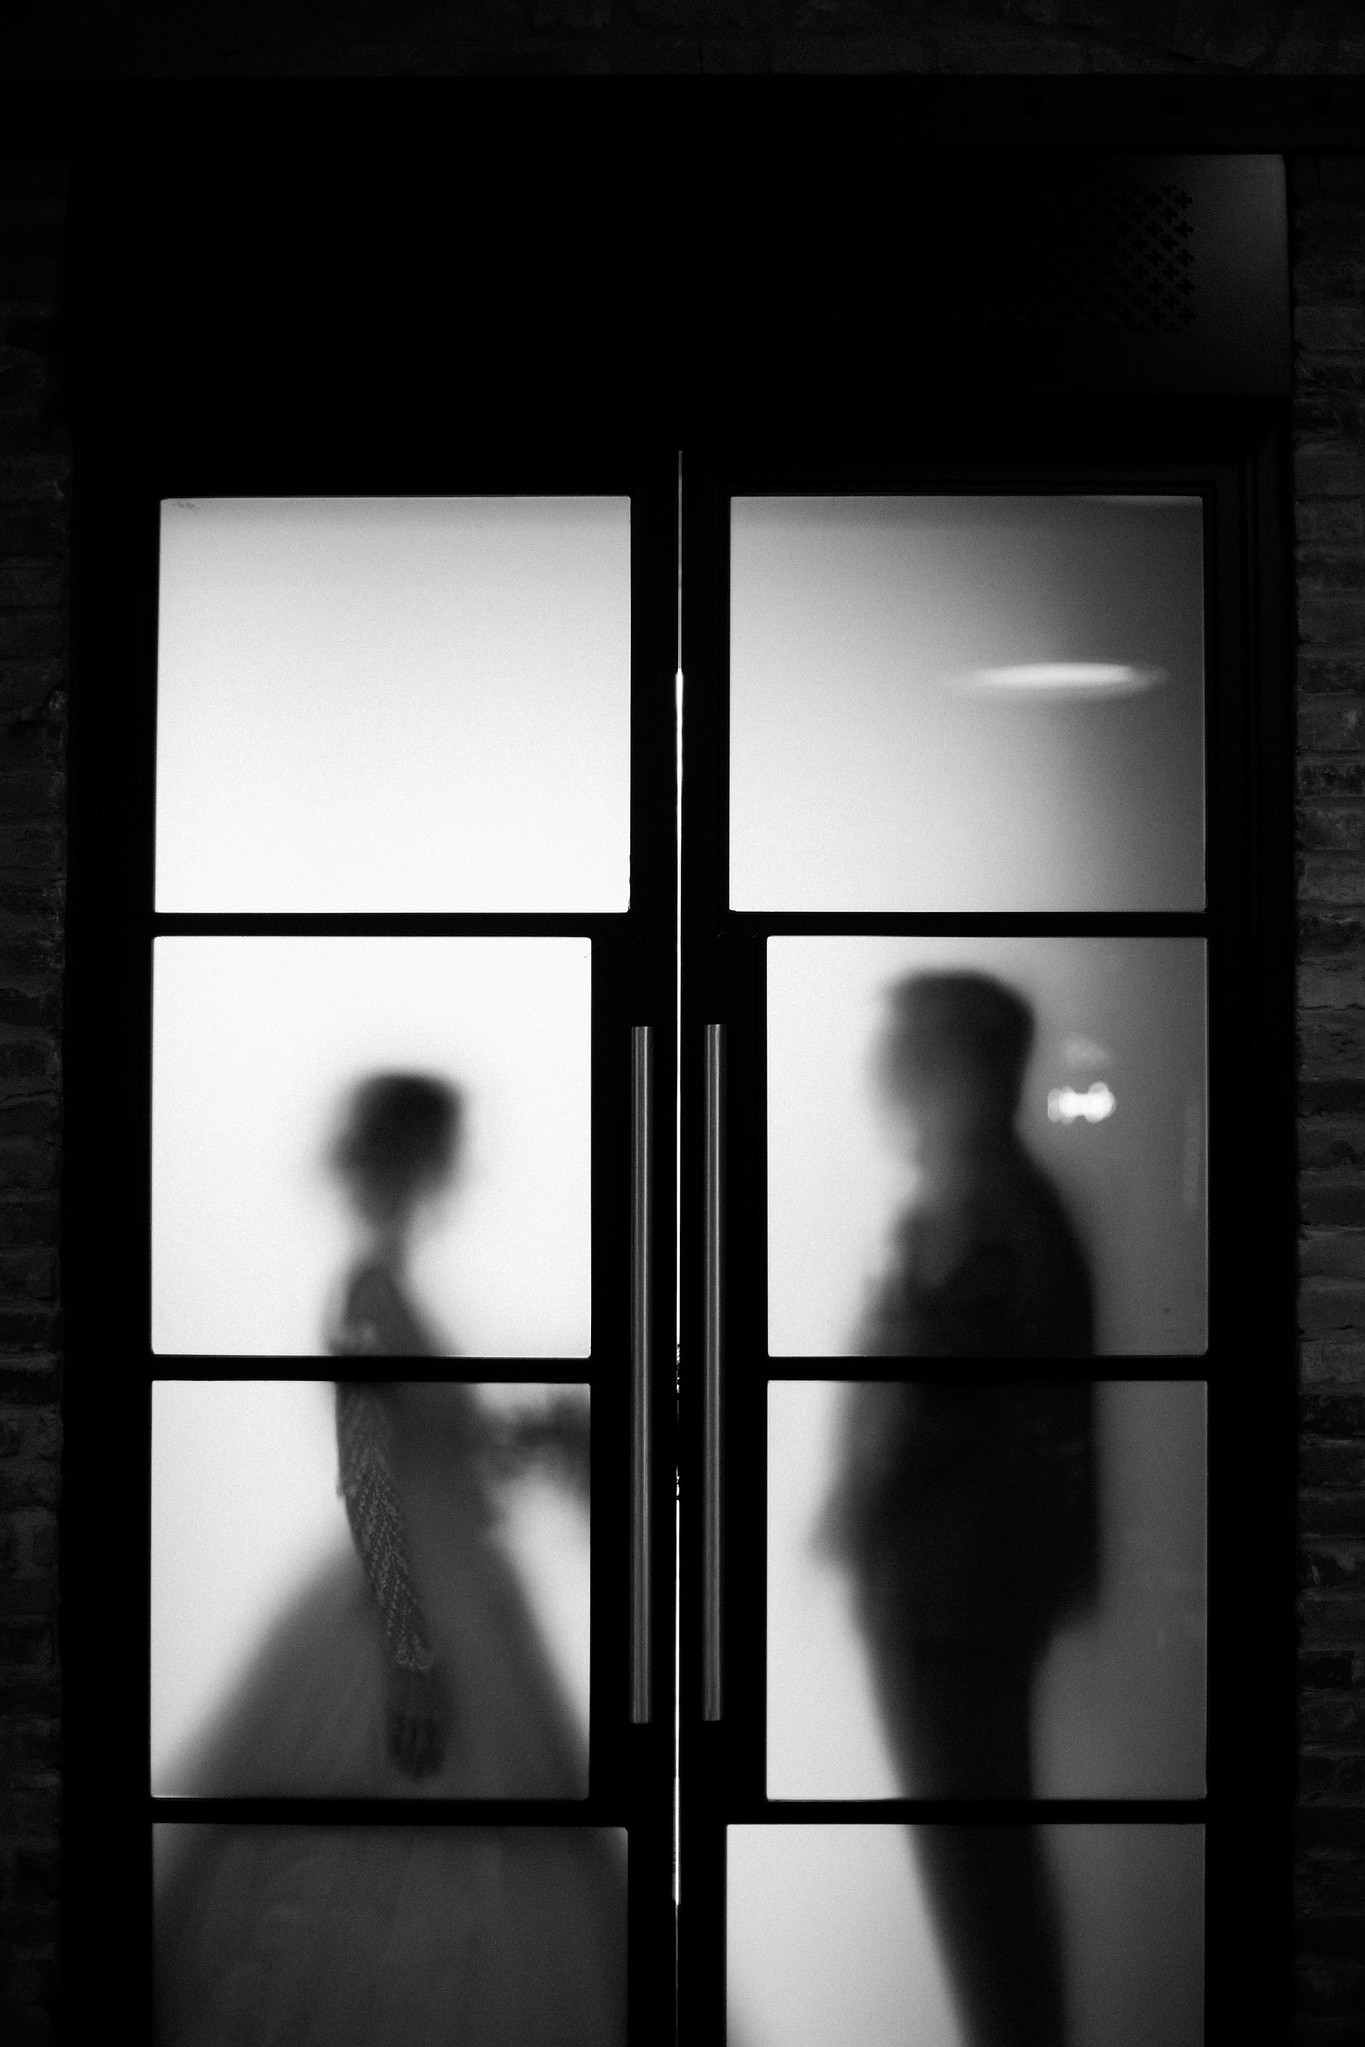 Silhouettes as seen from Adelaide Hall